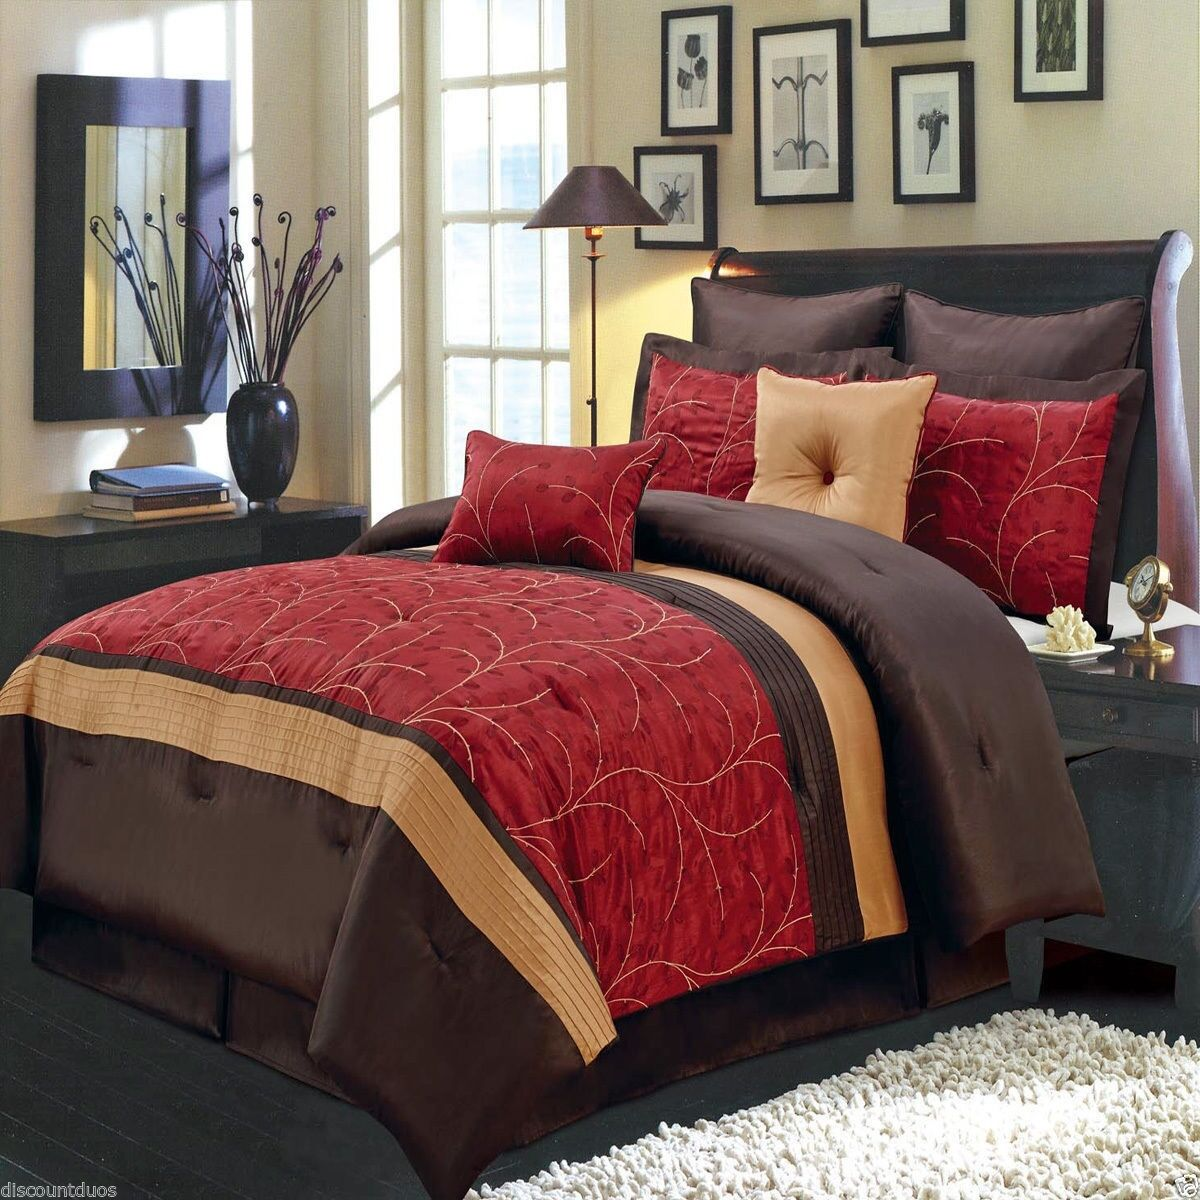 8pc Luxury rot Gold & braun Bedroom Comforter Set AND Deco Pillows - ALL GrößeS